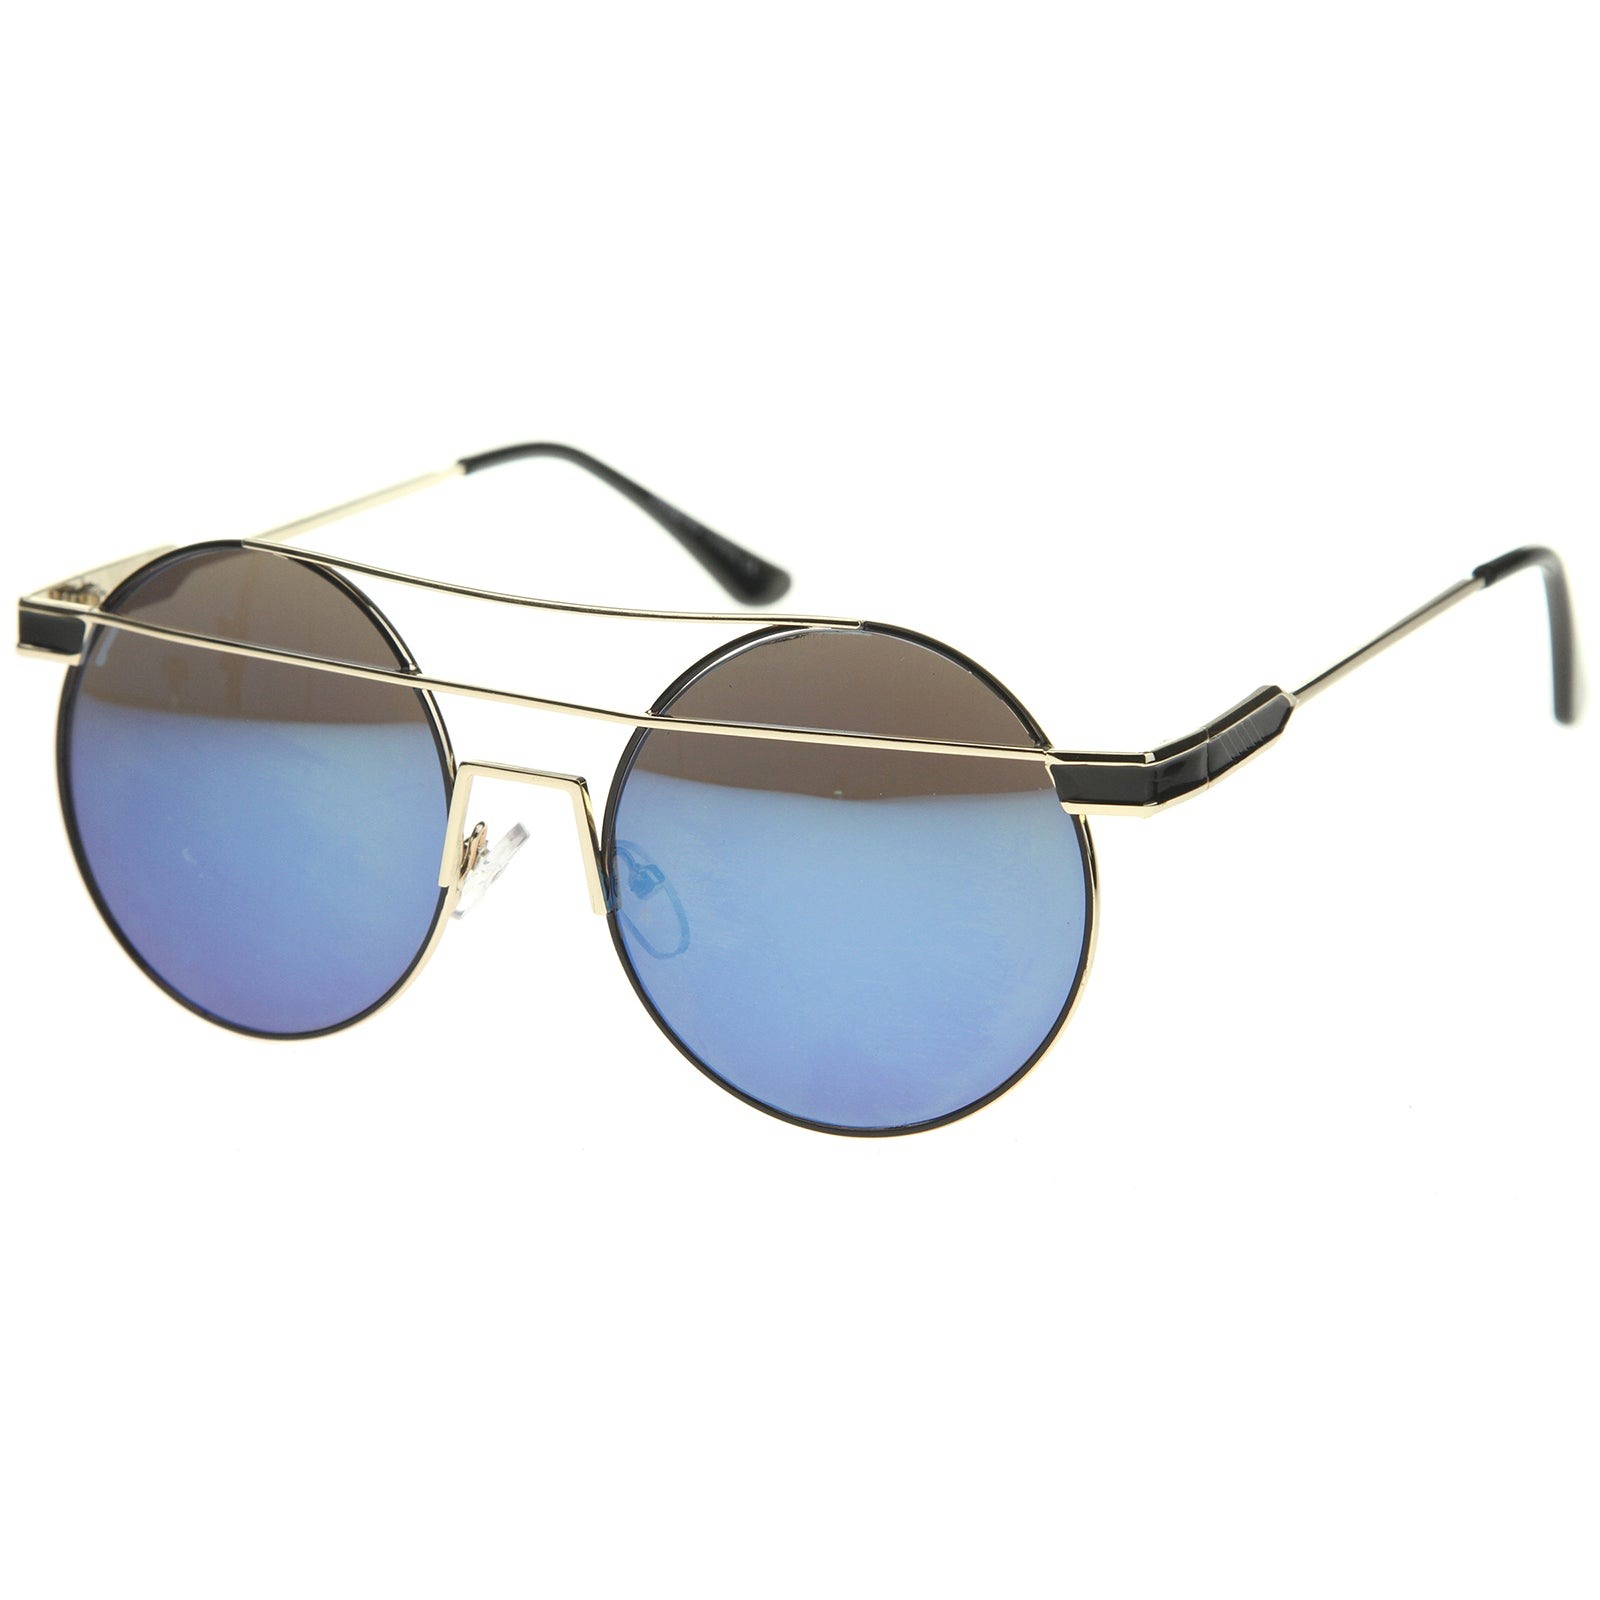 Modern Metal Frame Double Bridge Colored Mirror Lens Round Sunglasses 59mm - sunglass.la - 2